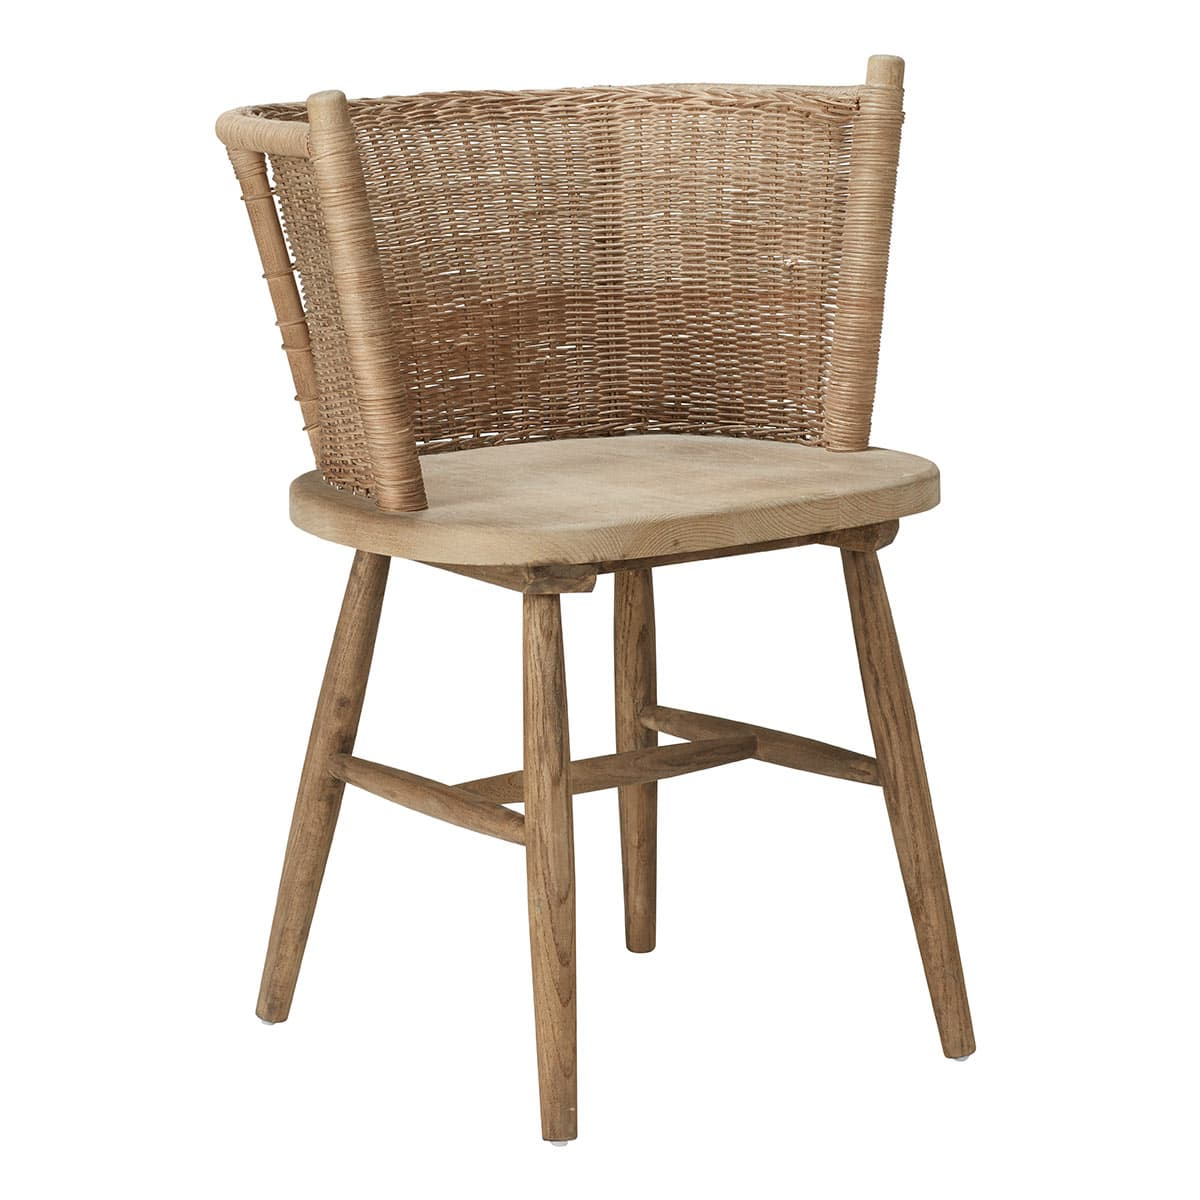 Taino Chair - Natural